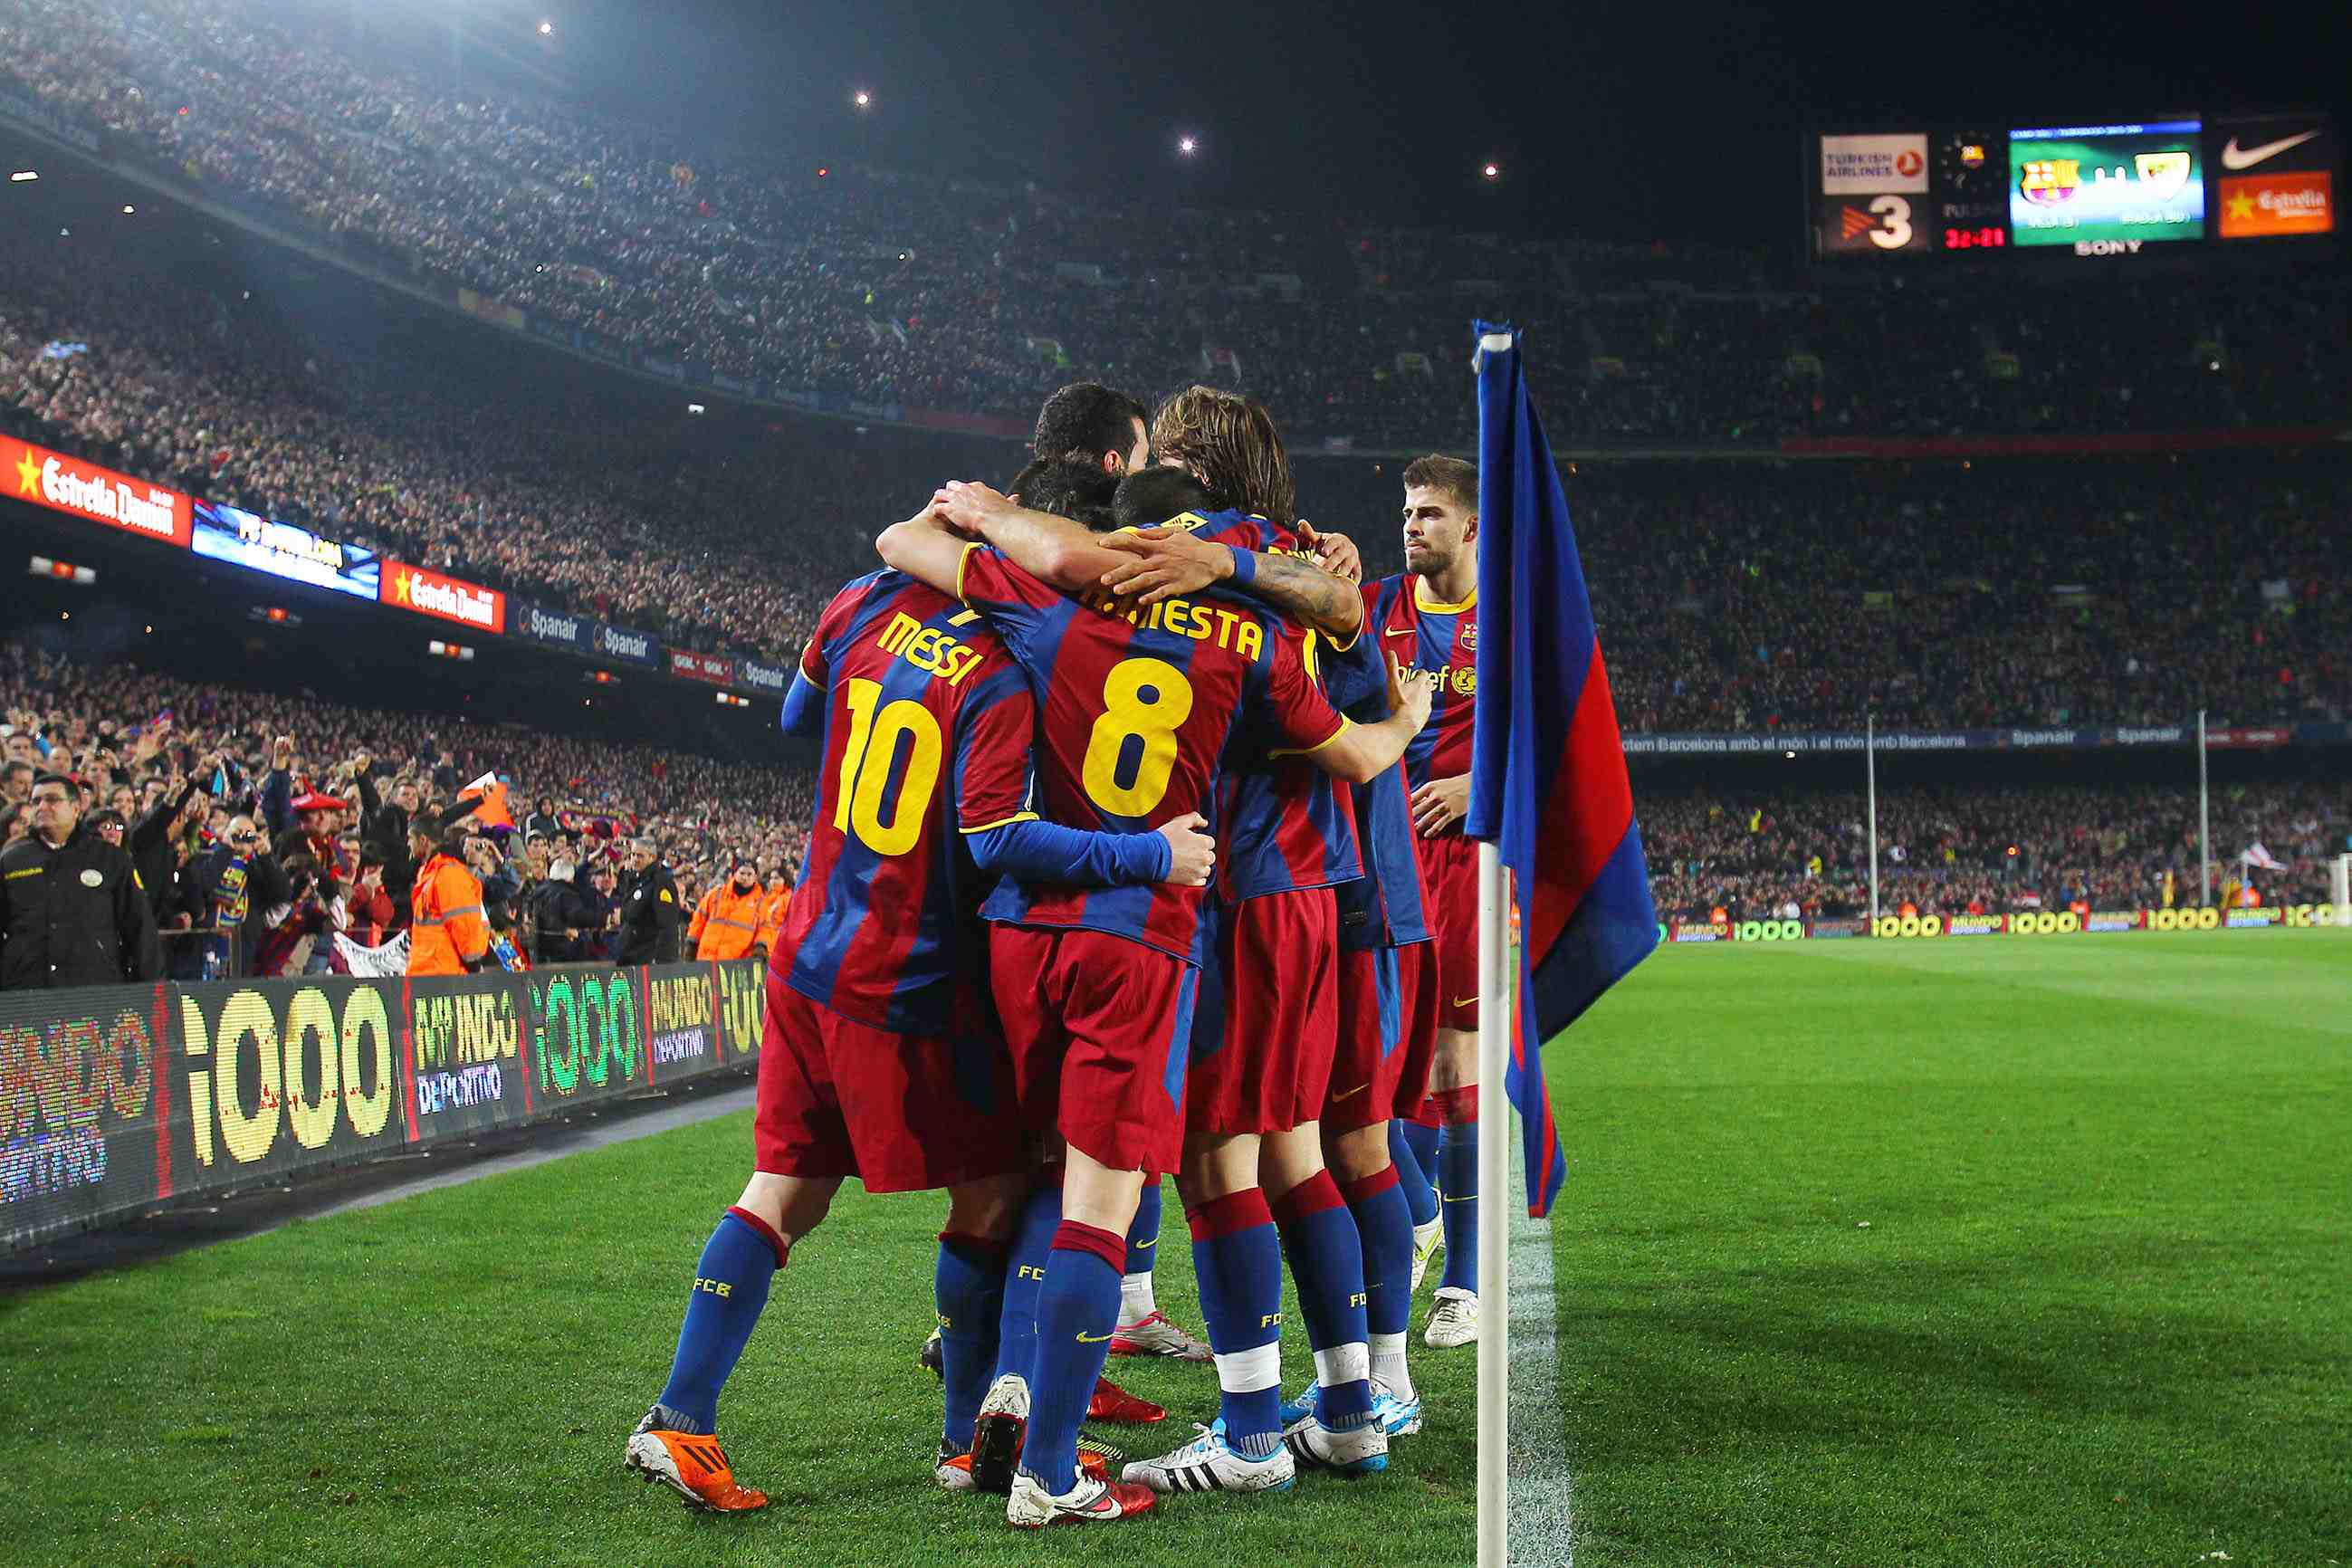 Camp Nou,things to do in Barcelona